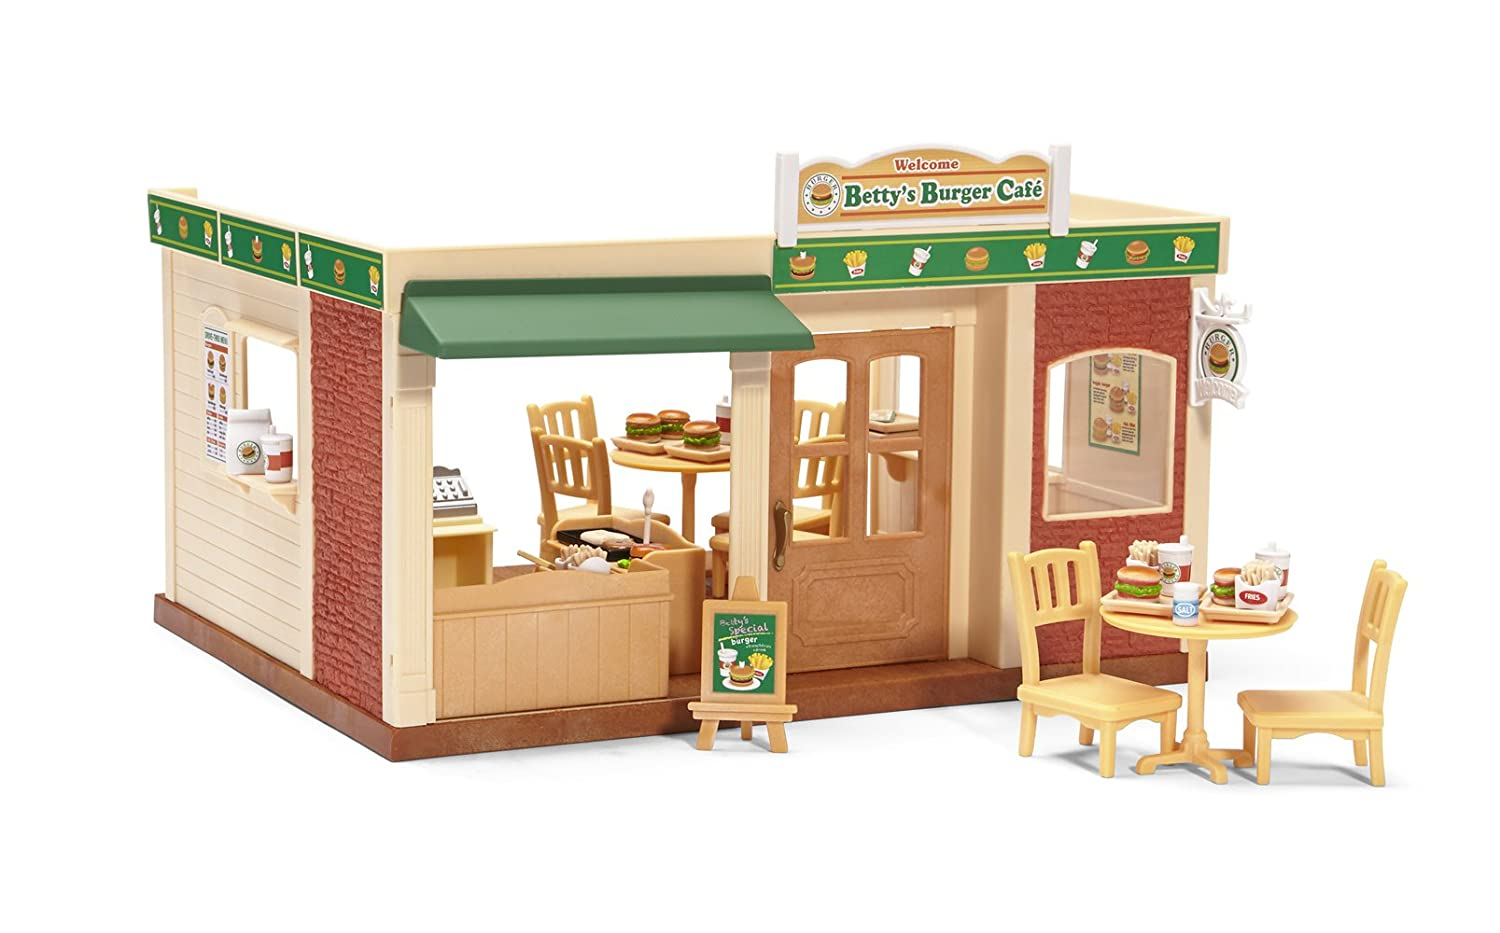 Calico Critters Burger Cafe Play Set